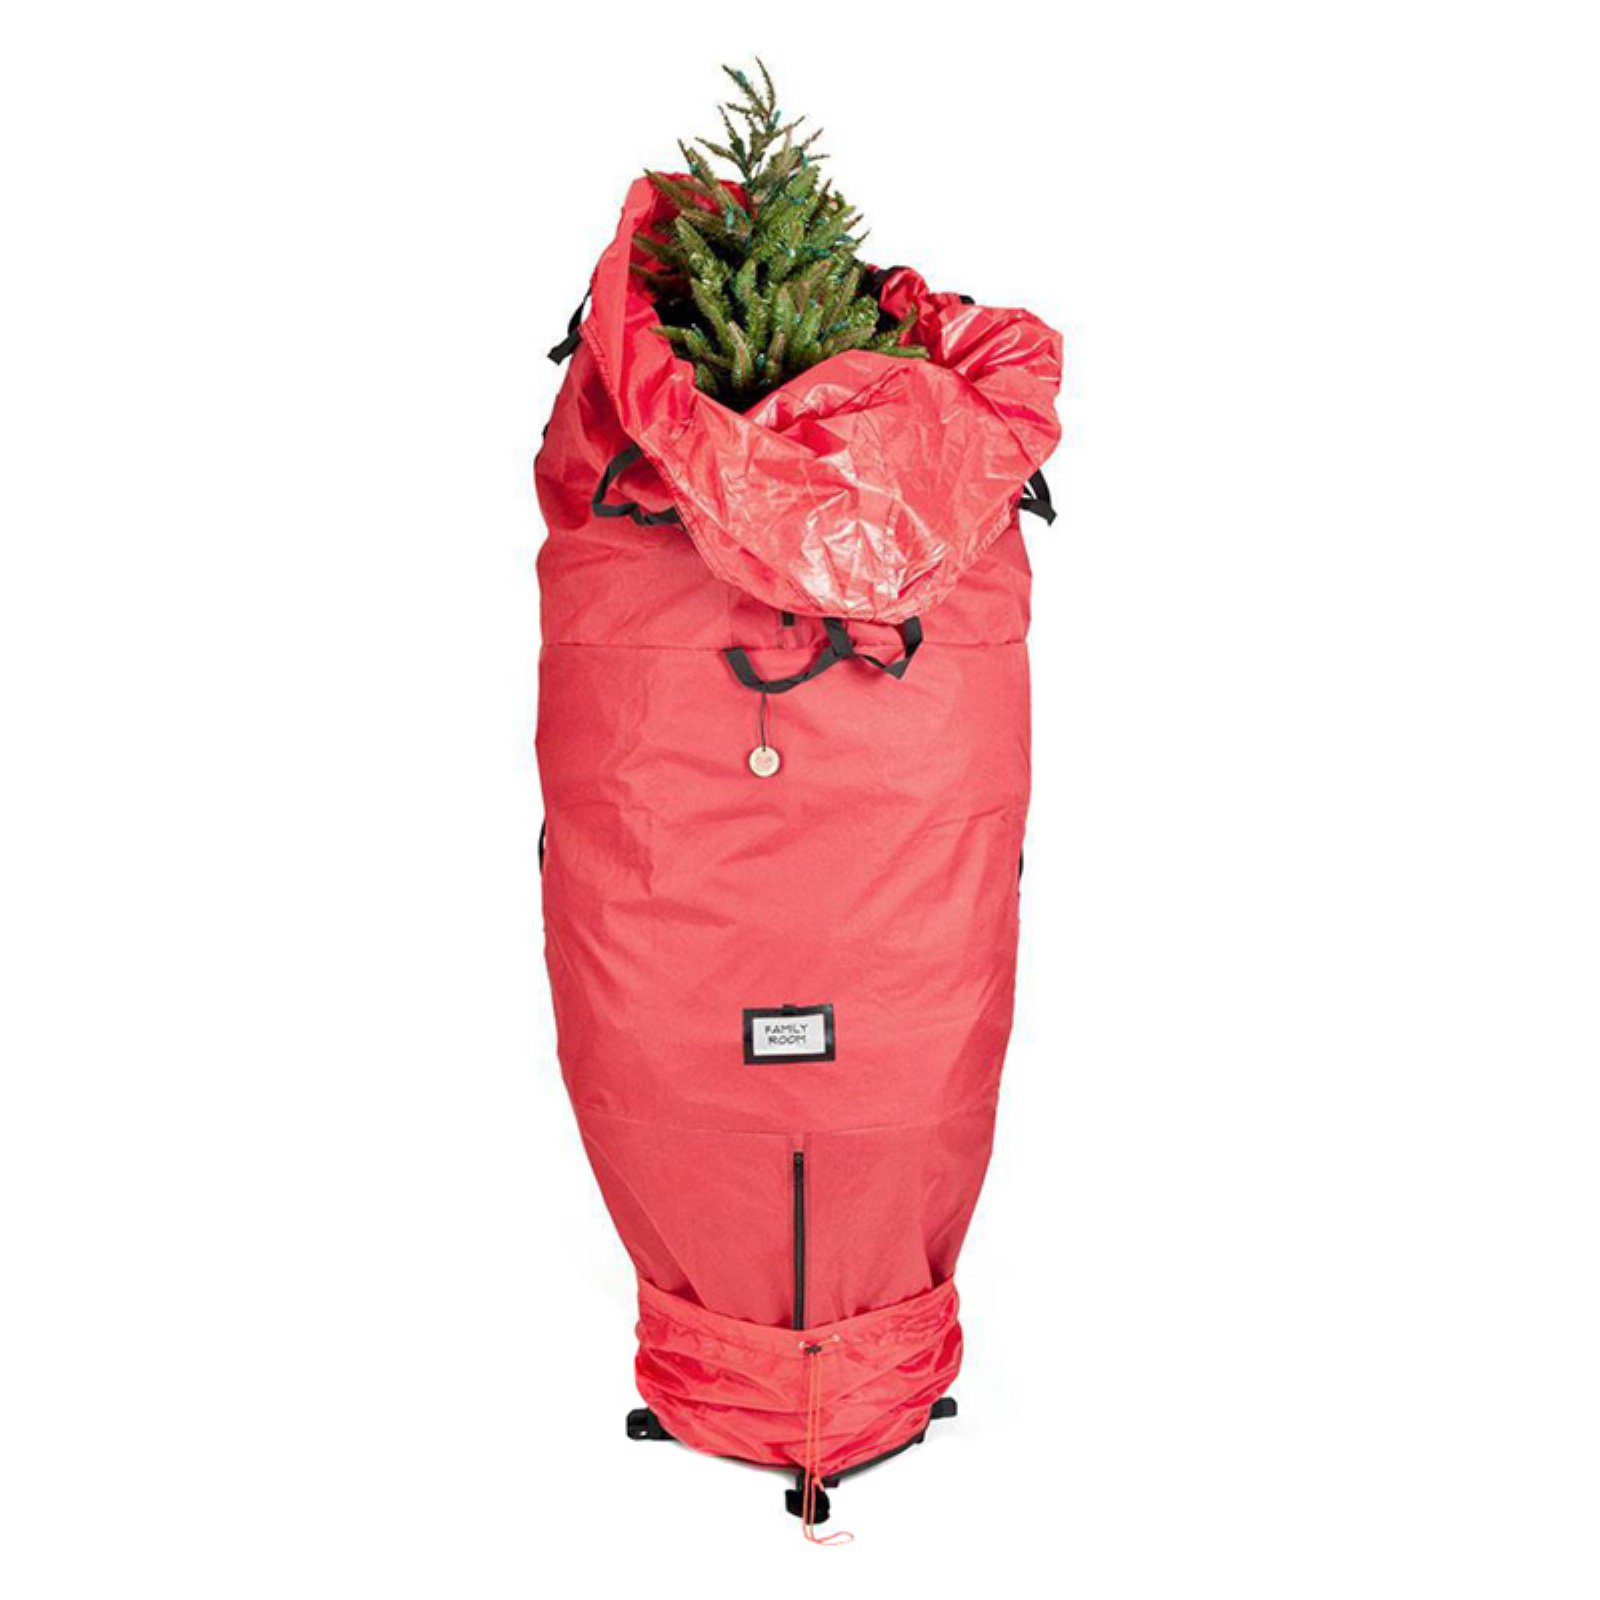 Treekeeper 7-7.5 ft. Upright Tree Storage Bag